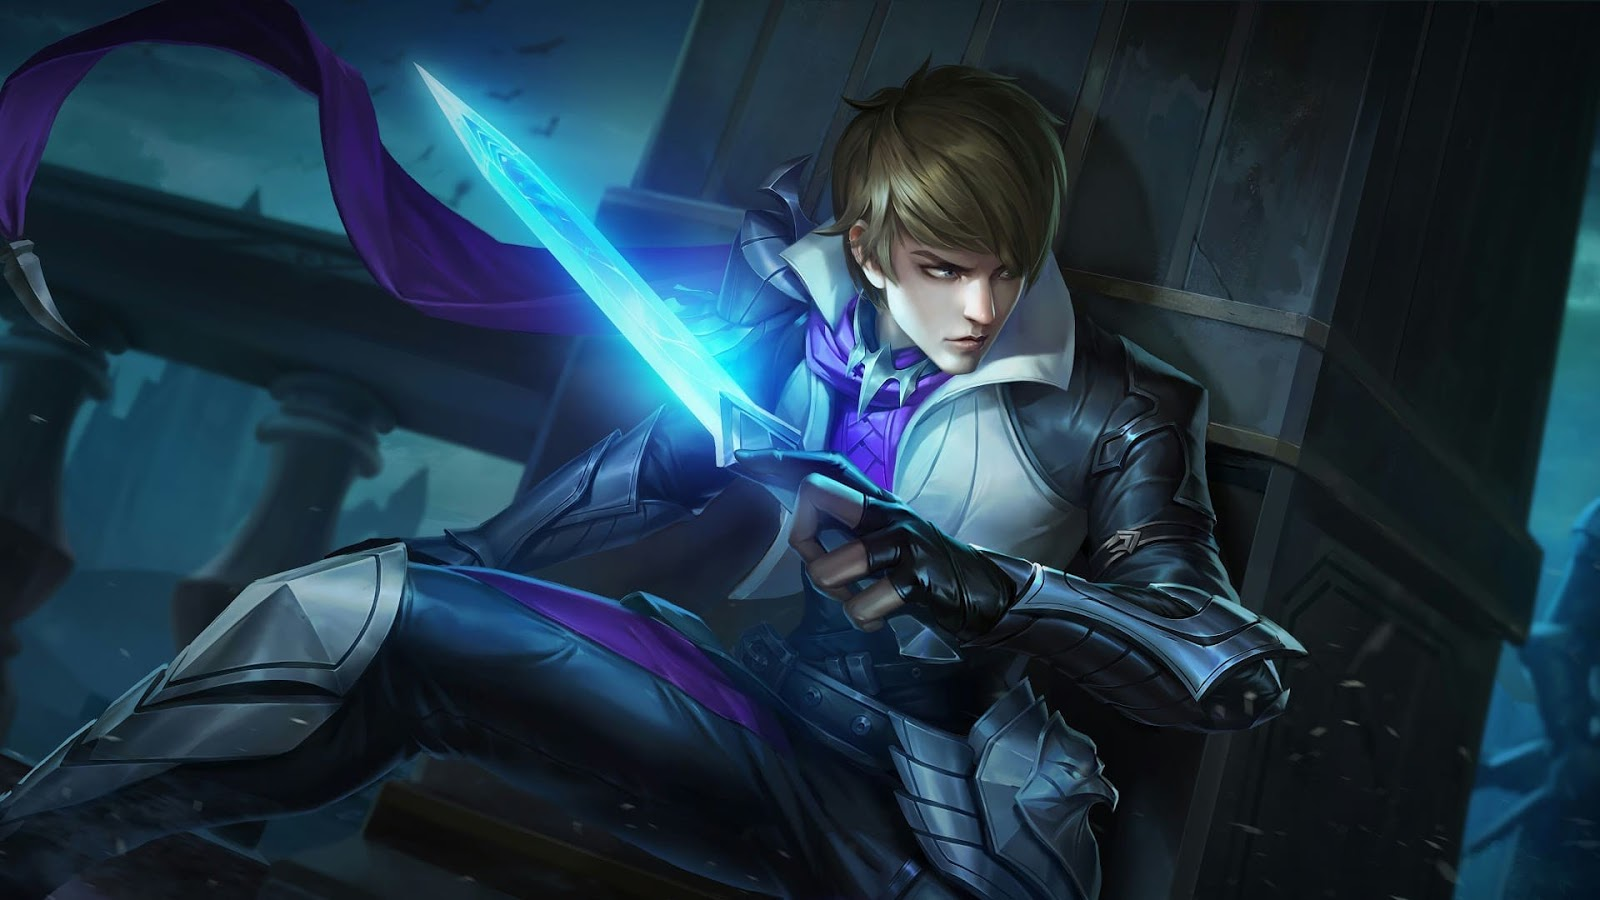 Wallpaper Gusion Holy Blade Skin Mobile Legends HD for PC